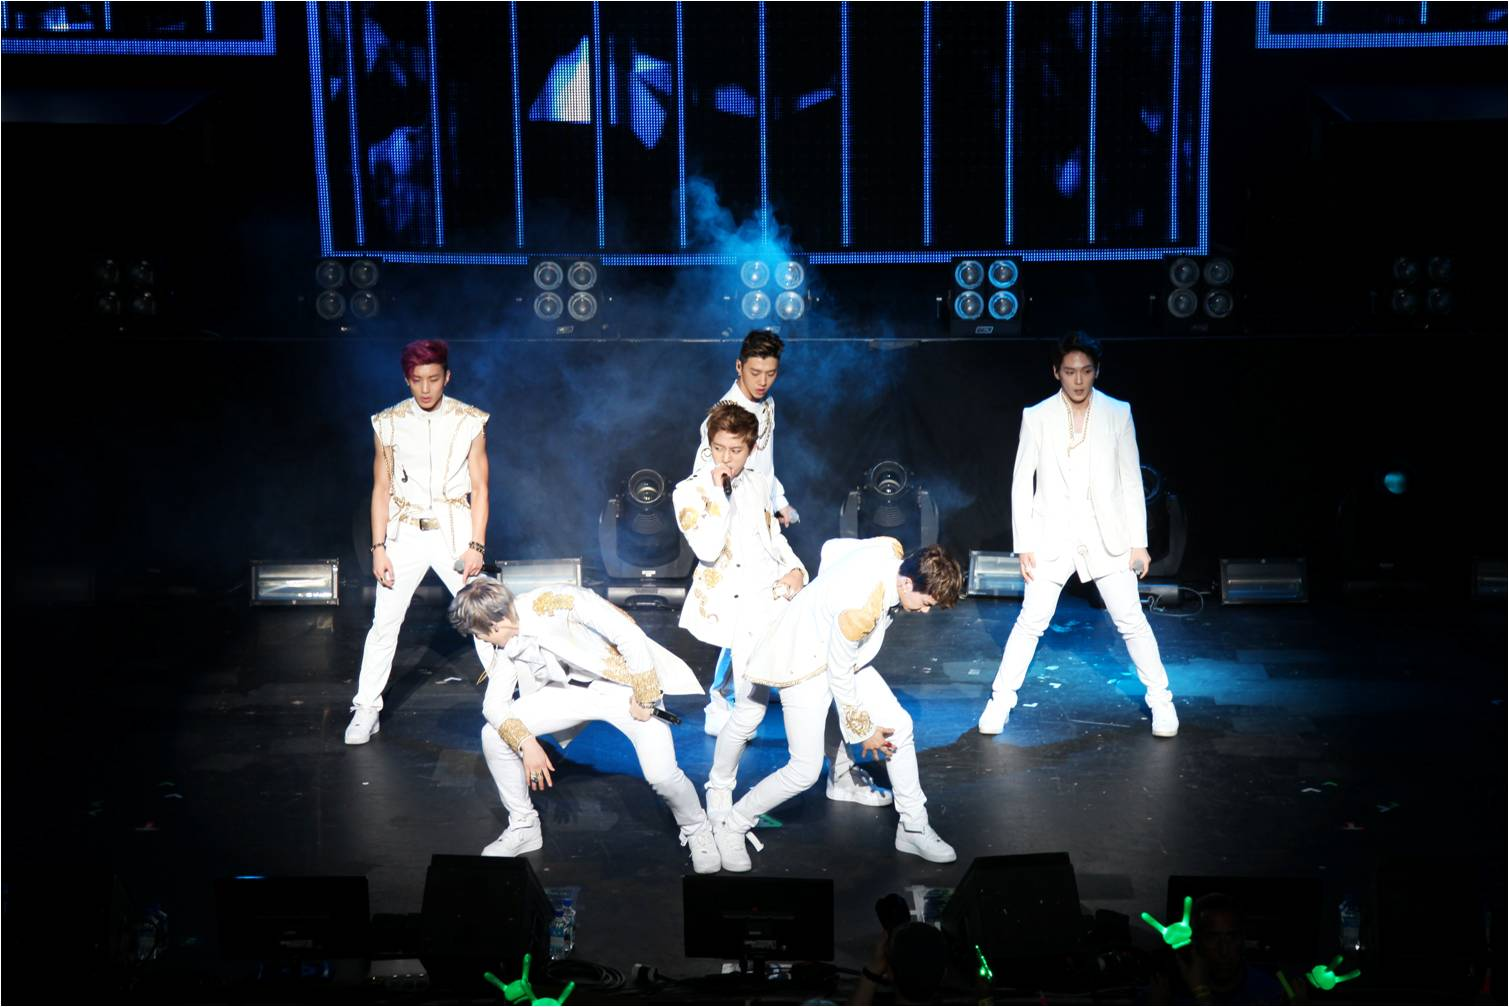 [Recap] B.A.P Treats Fans to Unforgettable Show in Washington DC